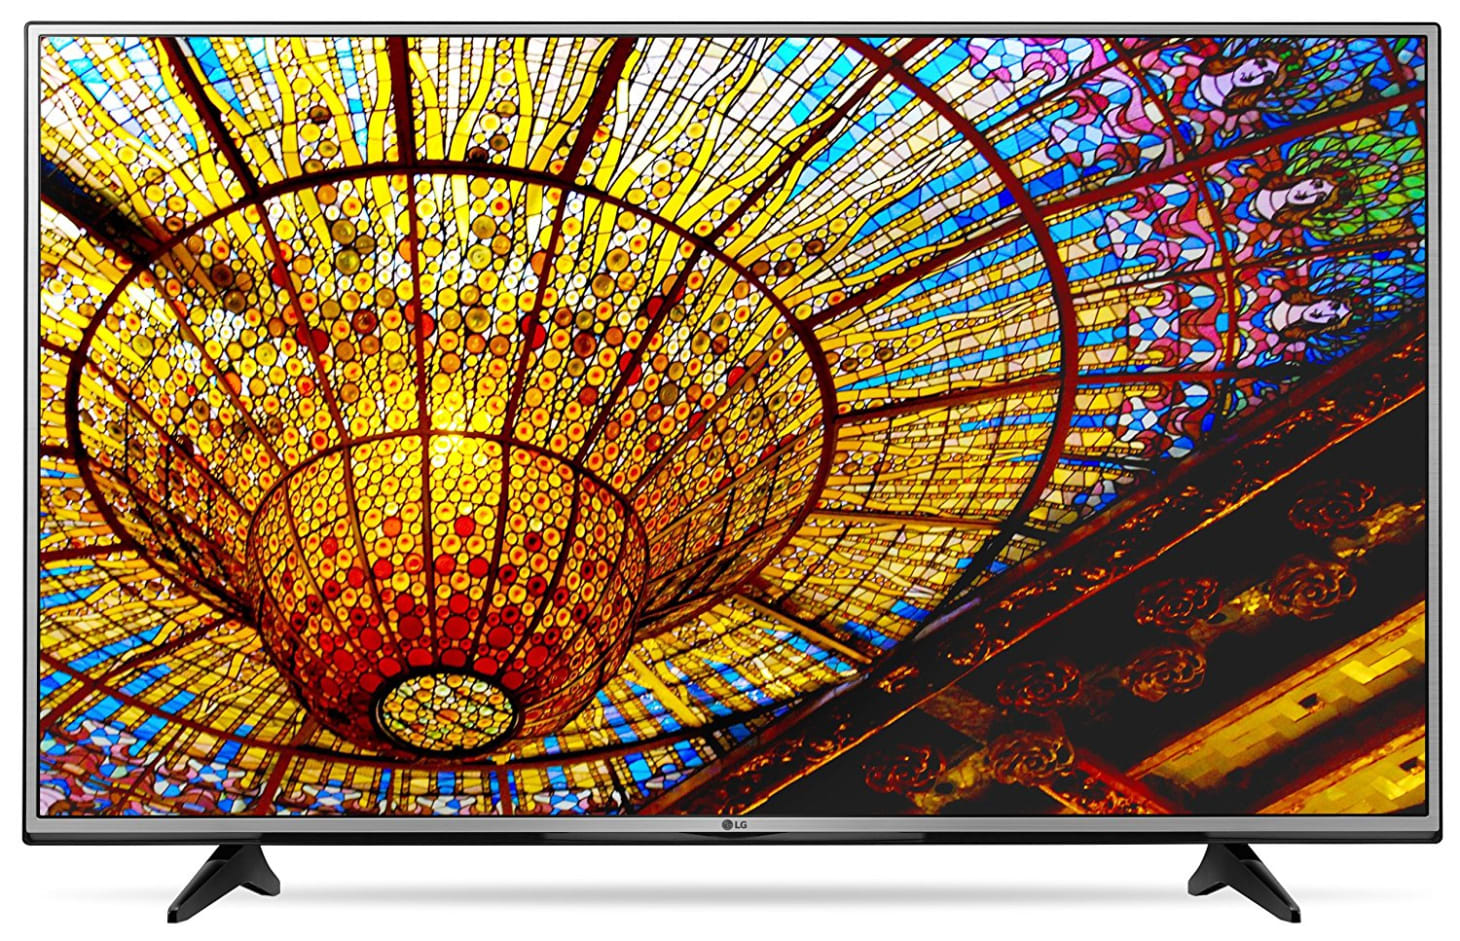 Buying a TV? The 6 Things You Absolutely Need to Know